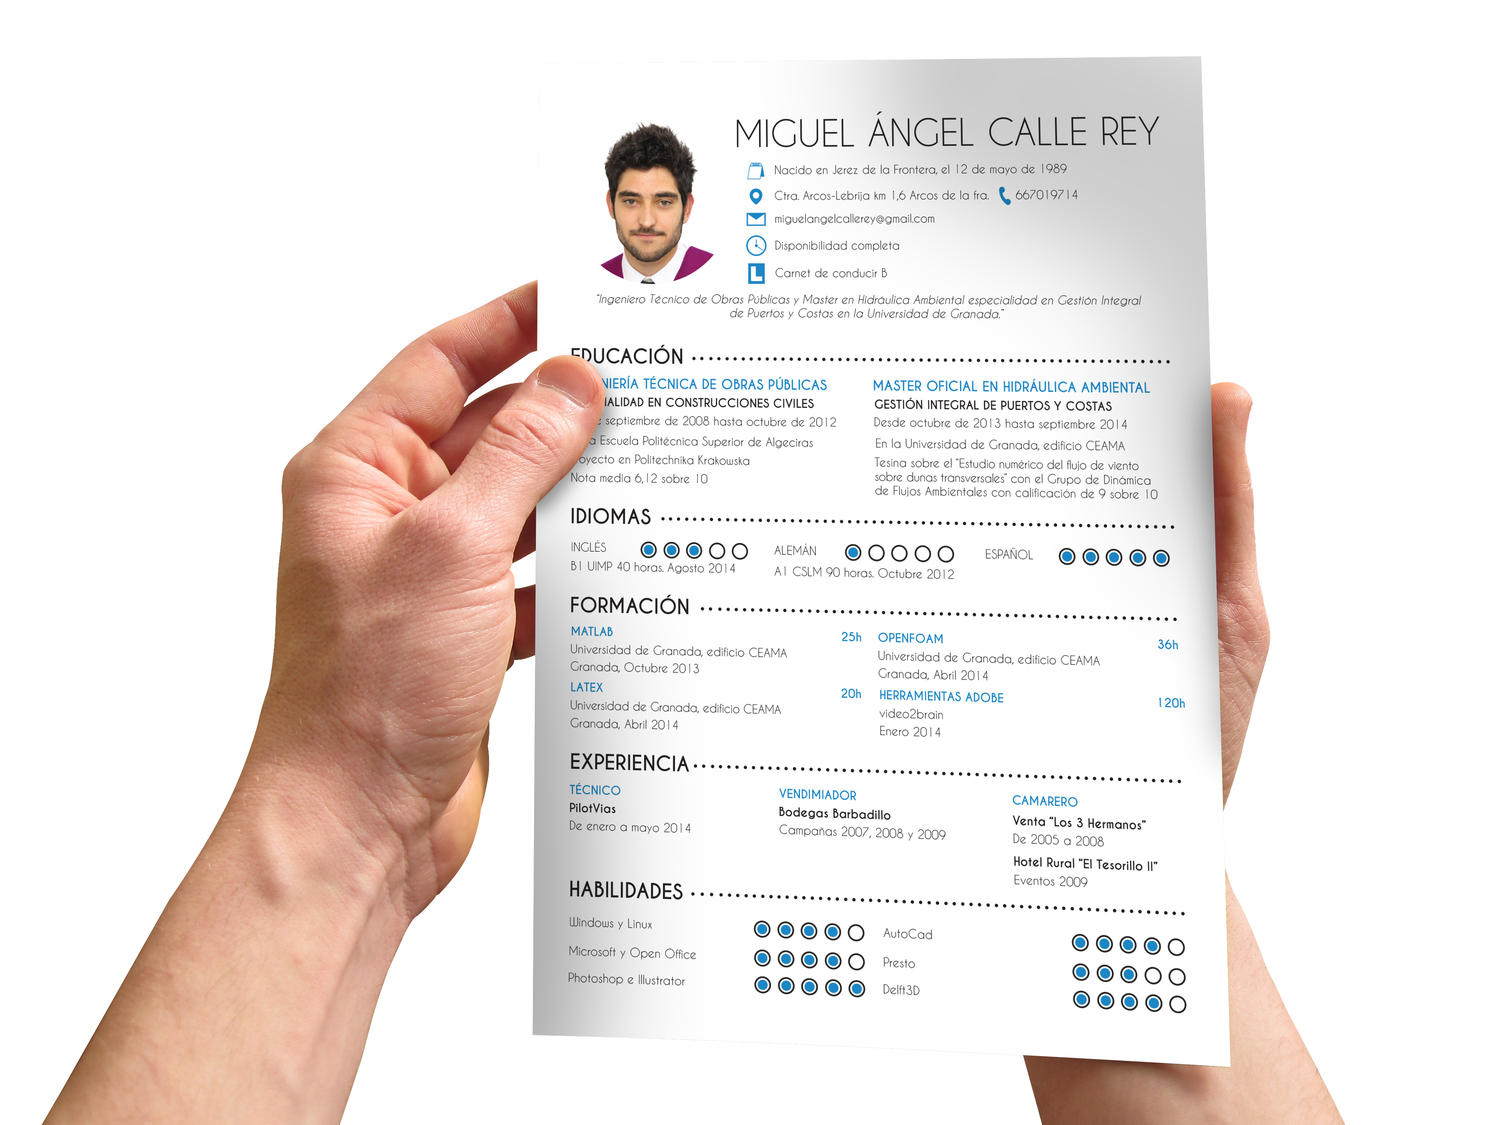 creative curriculum vitae resume design by kizzton on envato studio